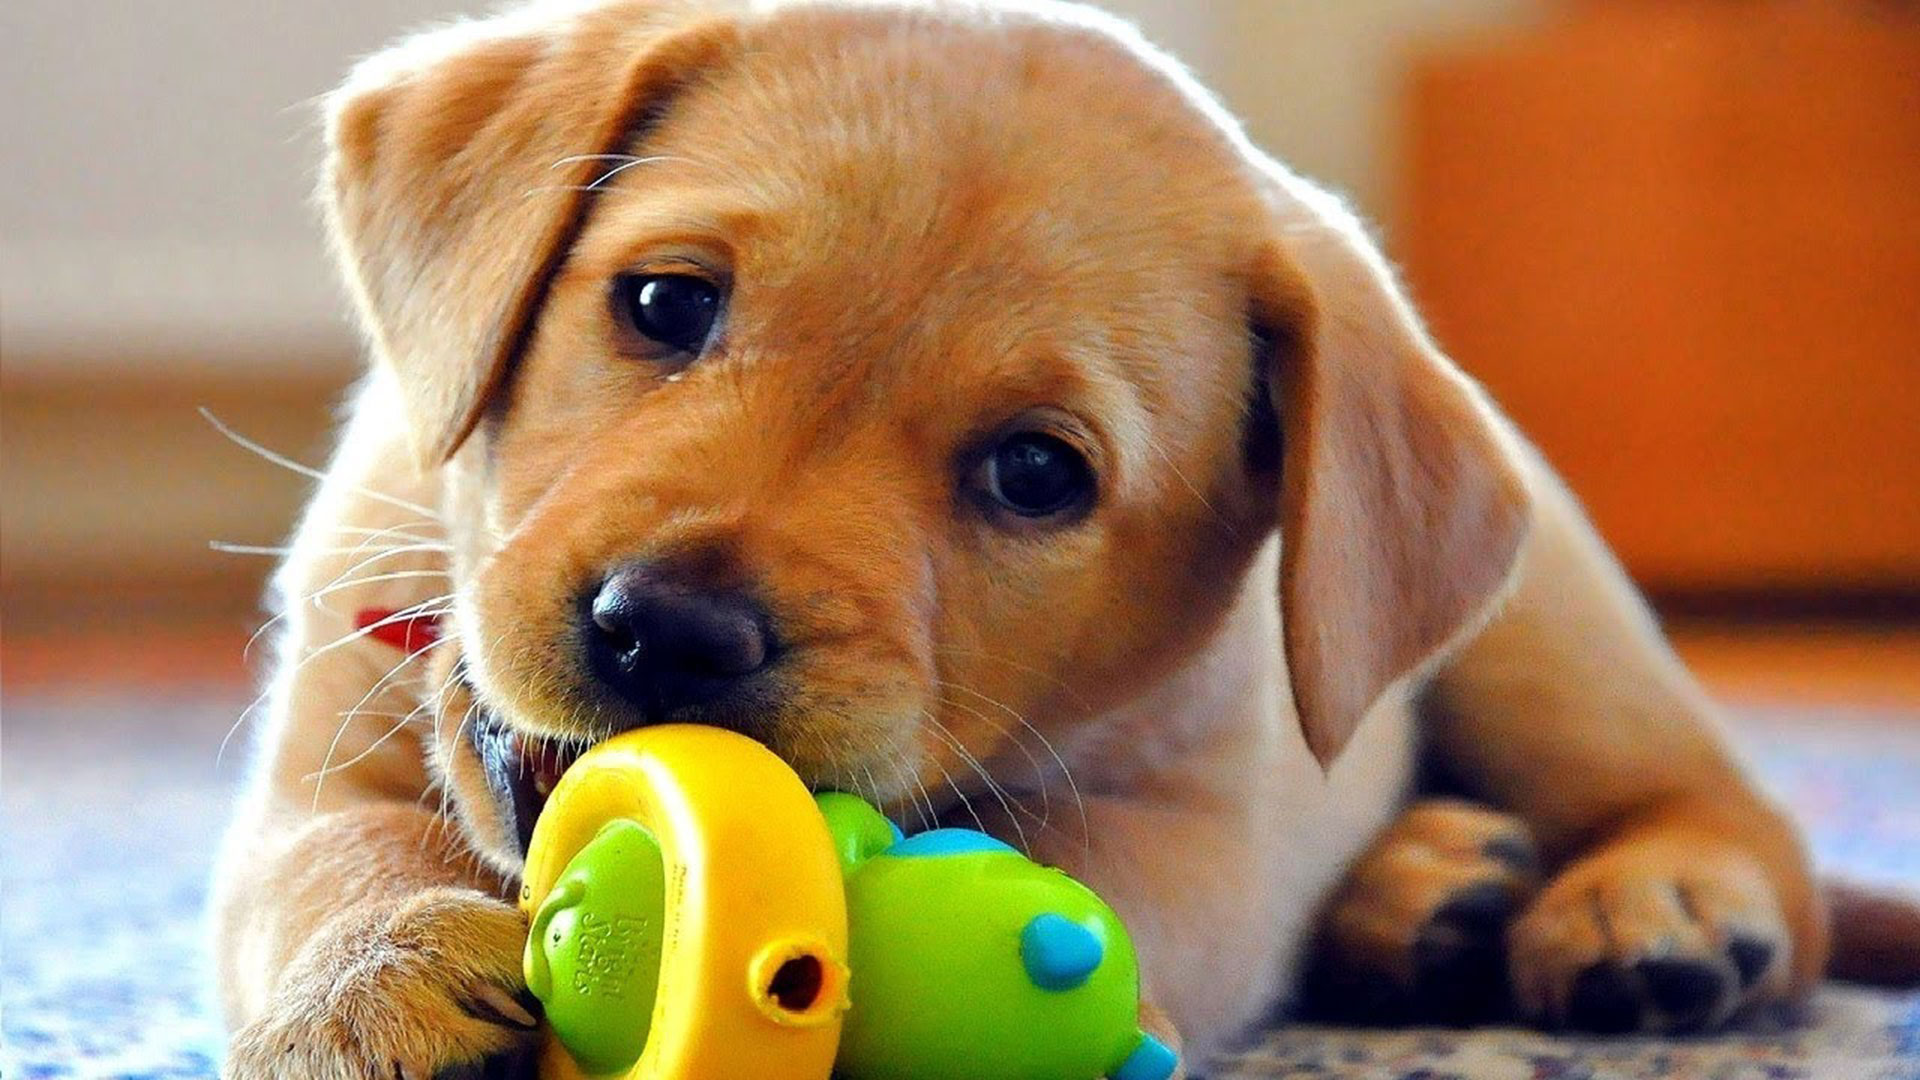 cute-dog-play-with-toy1920x1080-wallpaper-wpc5803829